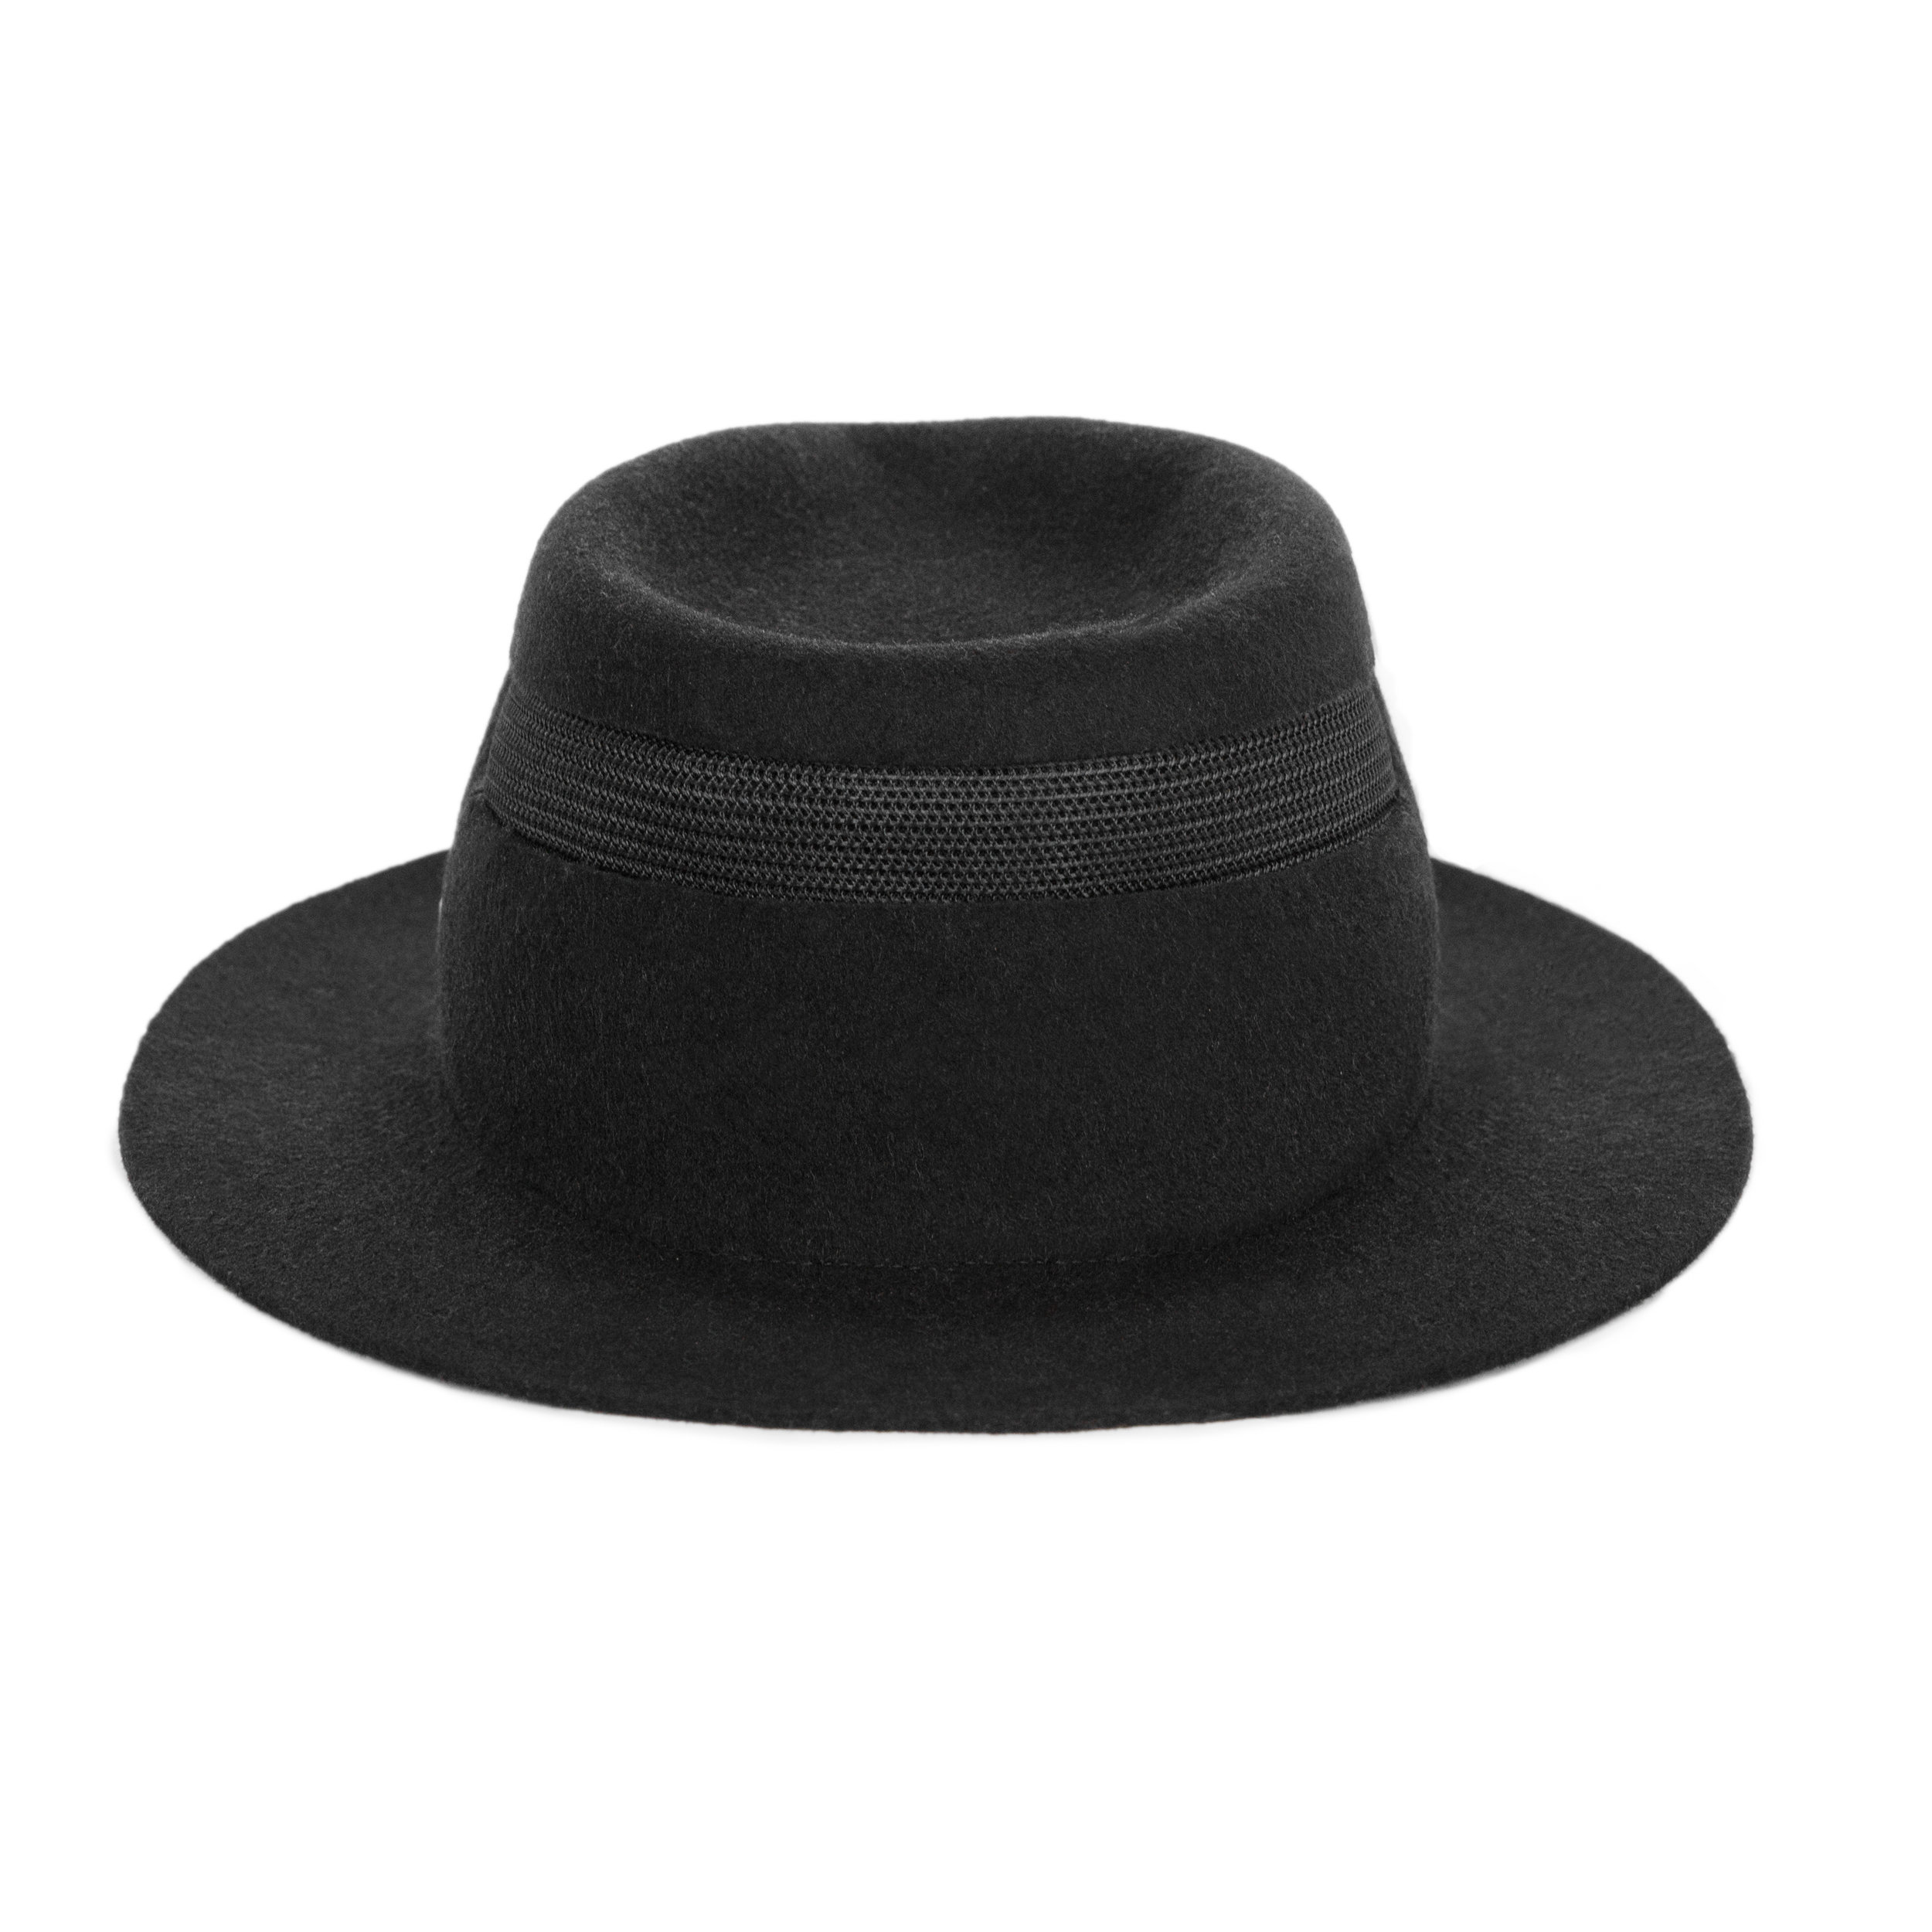 CHAPEAU RUDOLPH - This hat is for the person who constantly thinks before they act, one who always reads the instruction before starting any project. But most of all this hat is for the person who listens.